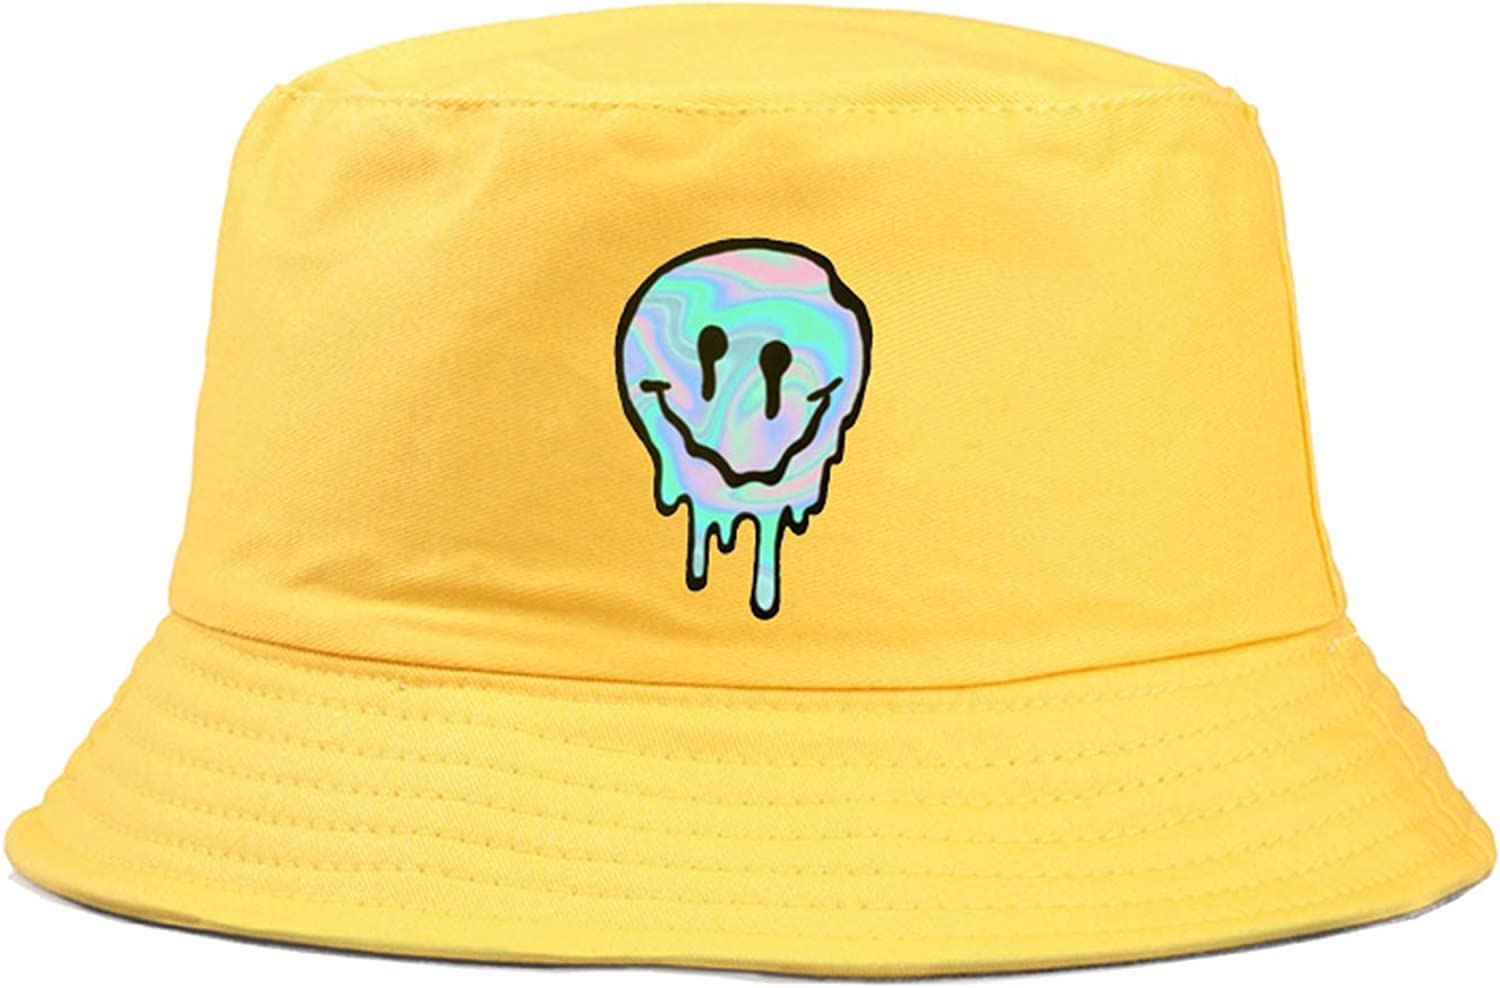 Casual Yellow Funny Smiley Face Fisherman Hat for Women Men Fashion Simple Outdoor Friends Visor Sun Basin Bucket Hats